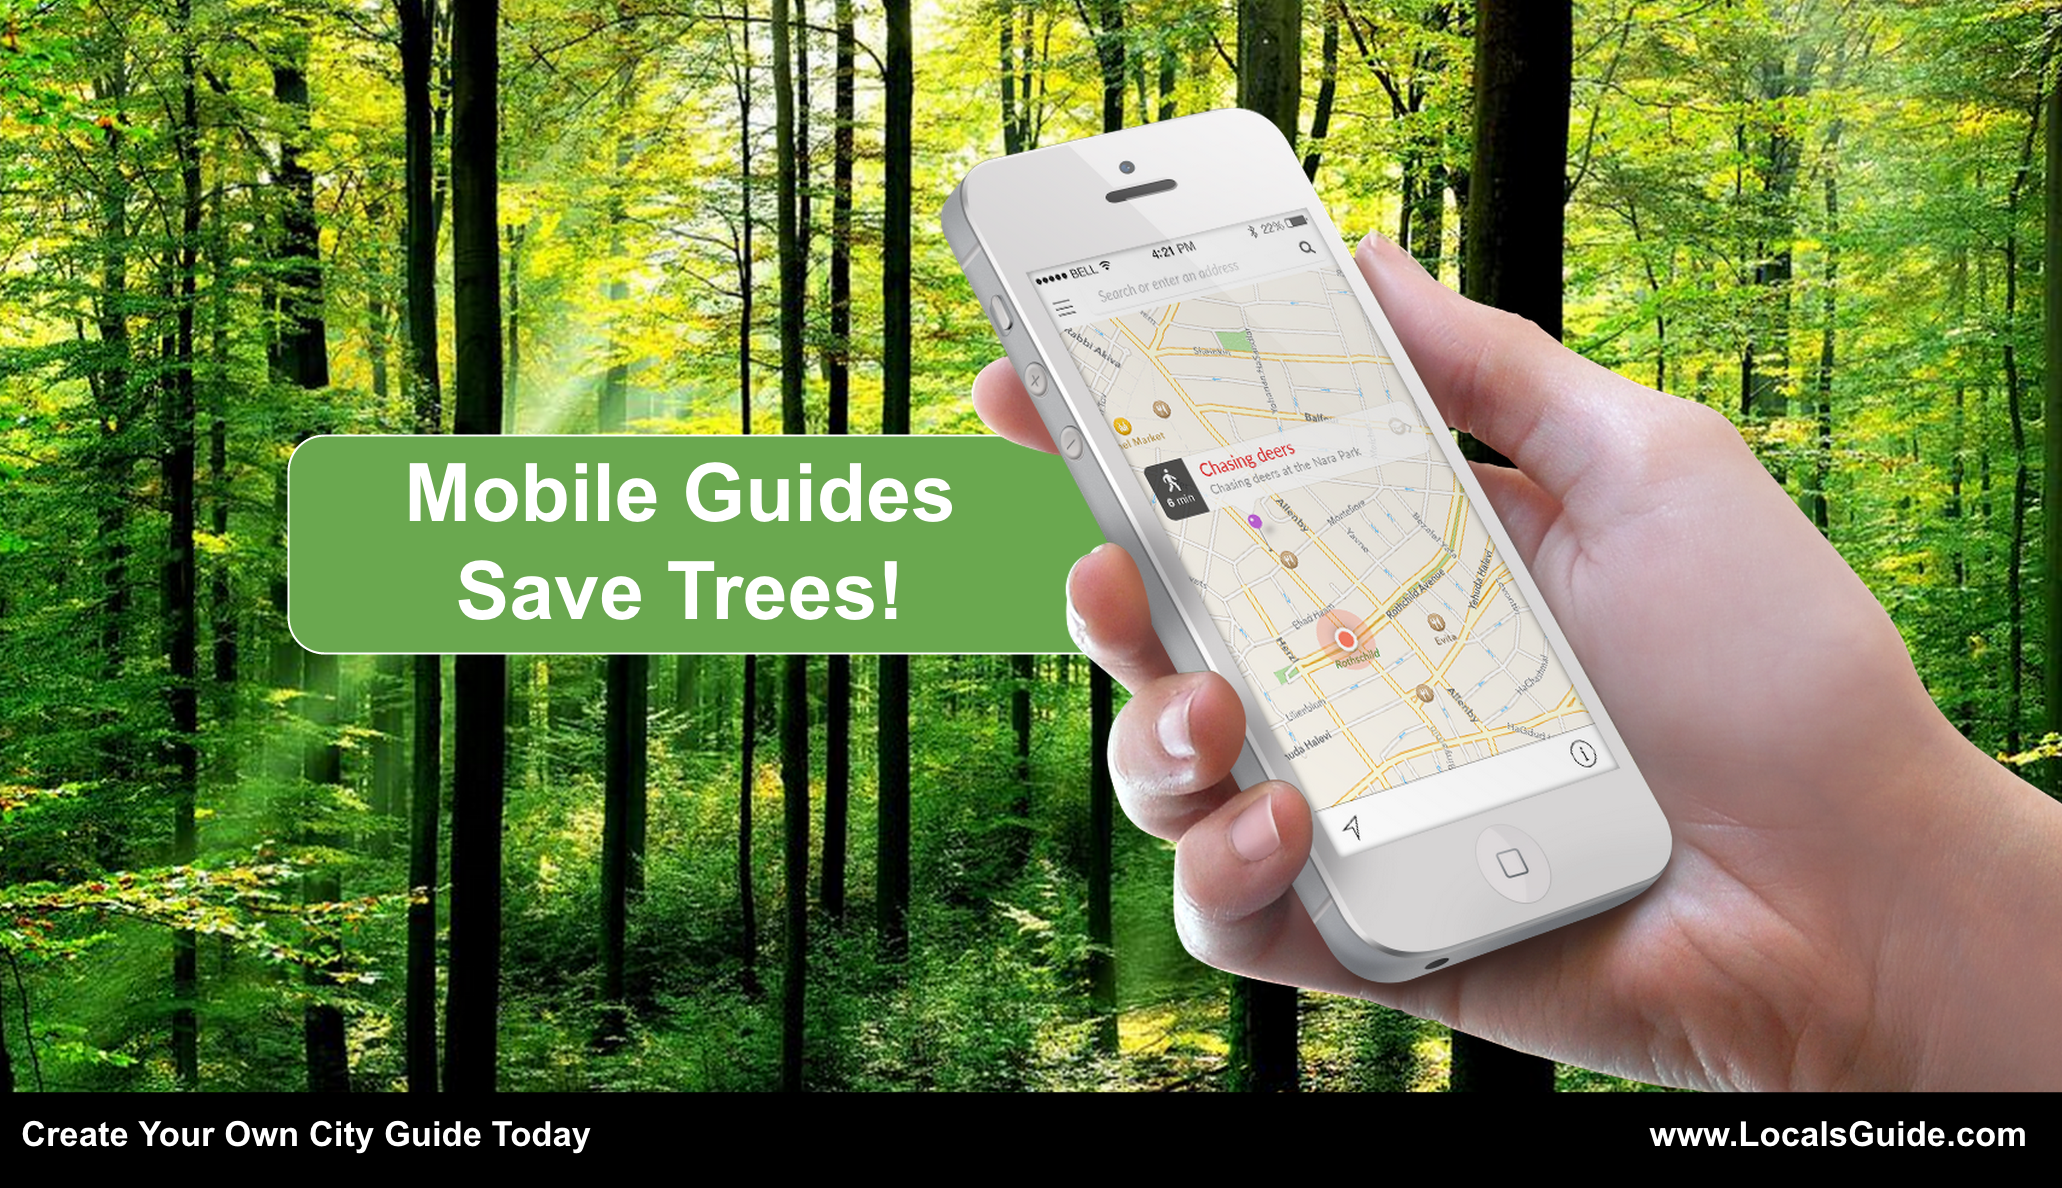 Mobile Guides Save Trees